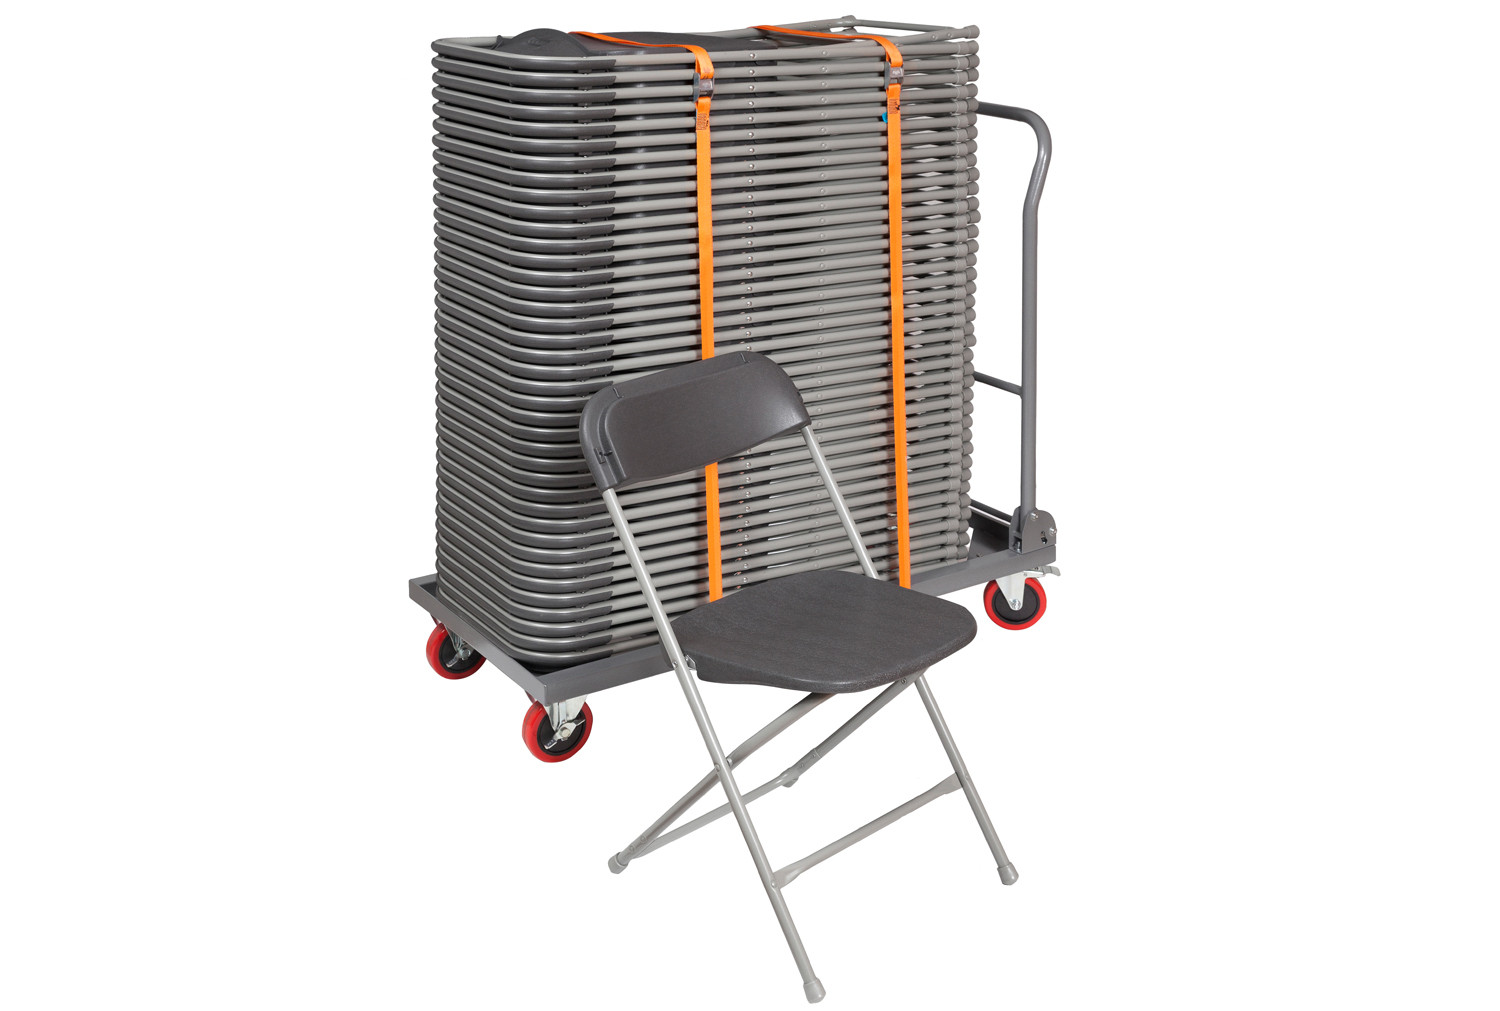 Classic Folding Chair Bundle Deal (40 Chairs & 1 Trolley)